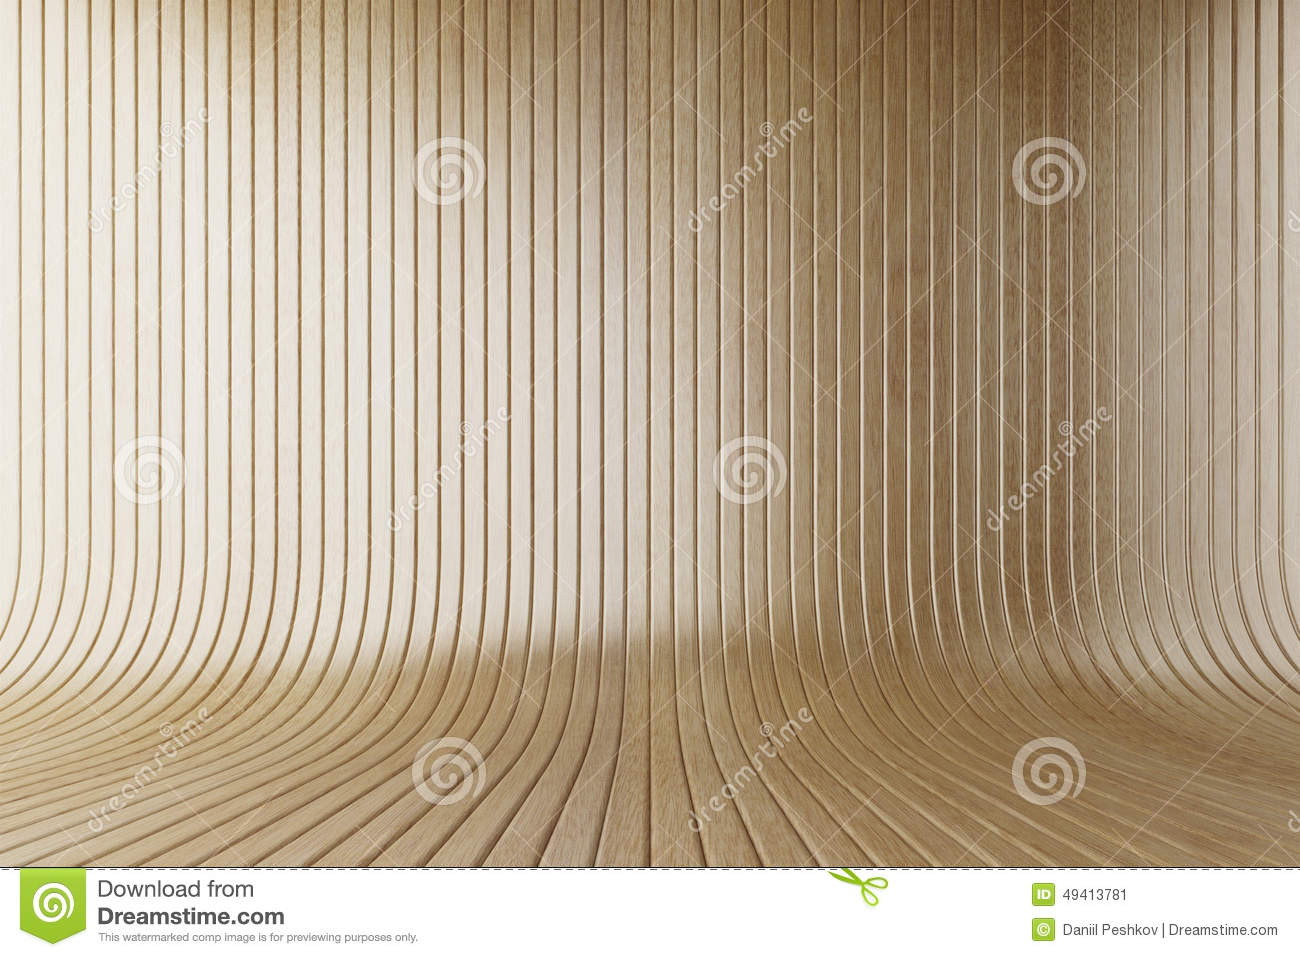 Download Gelbes Bauholz stock abbildung. Illustration von floorboard - 49413781